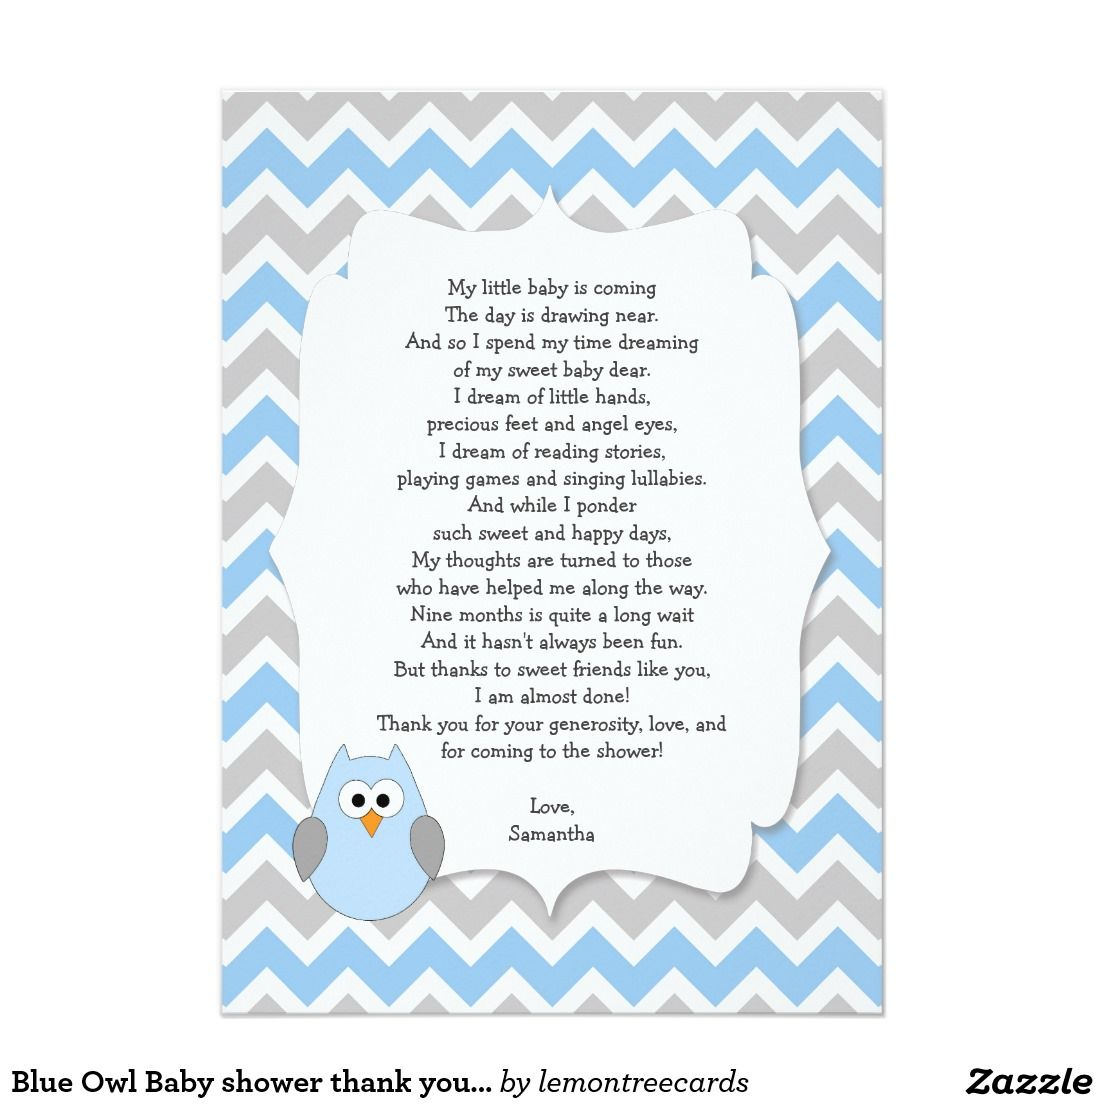 blue owl baby shower thank you notes with poem